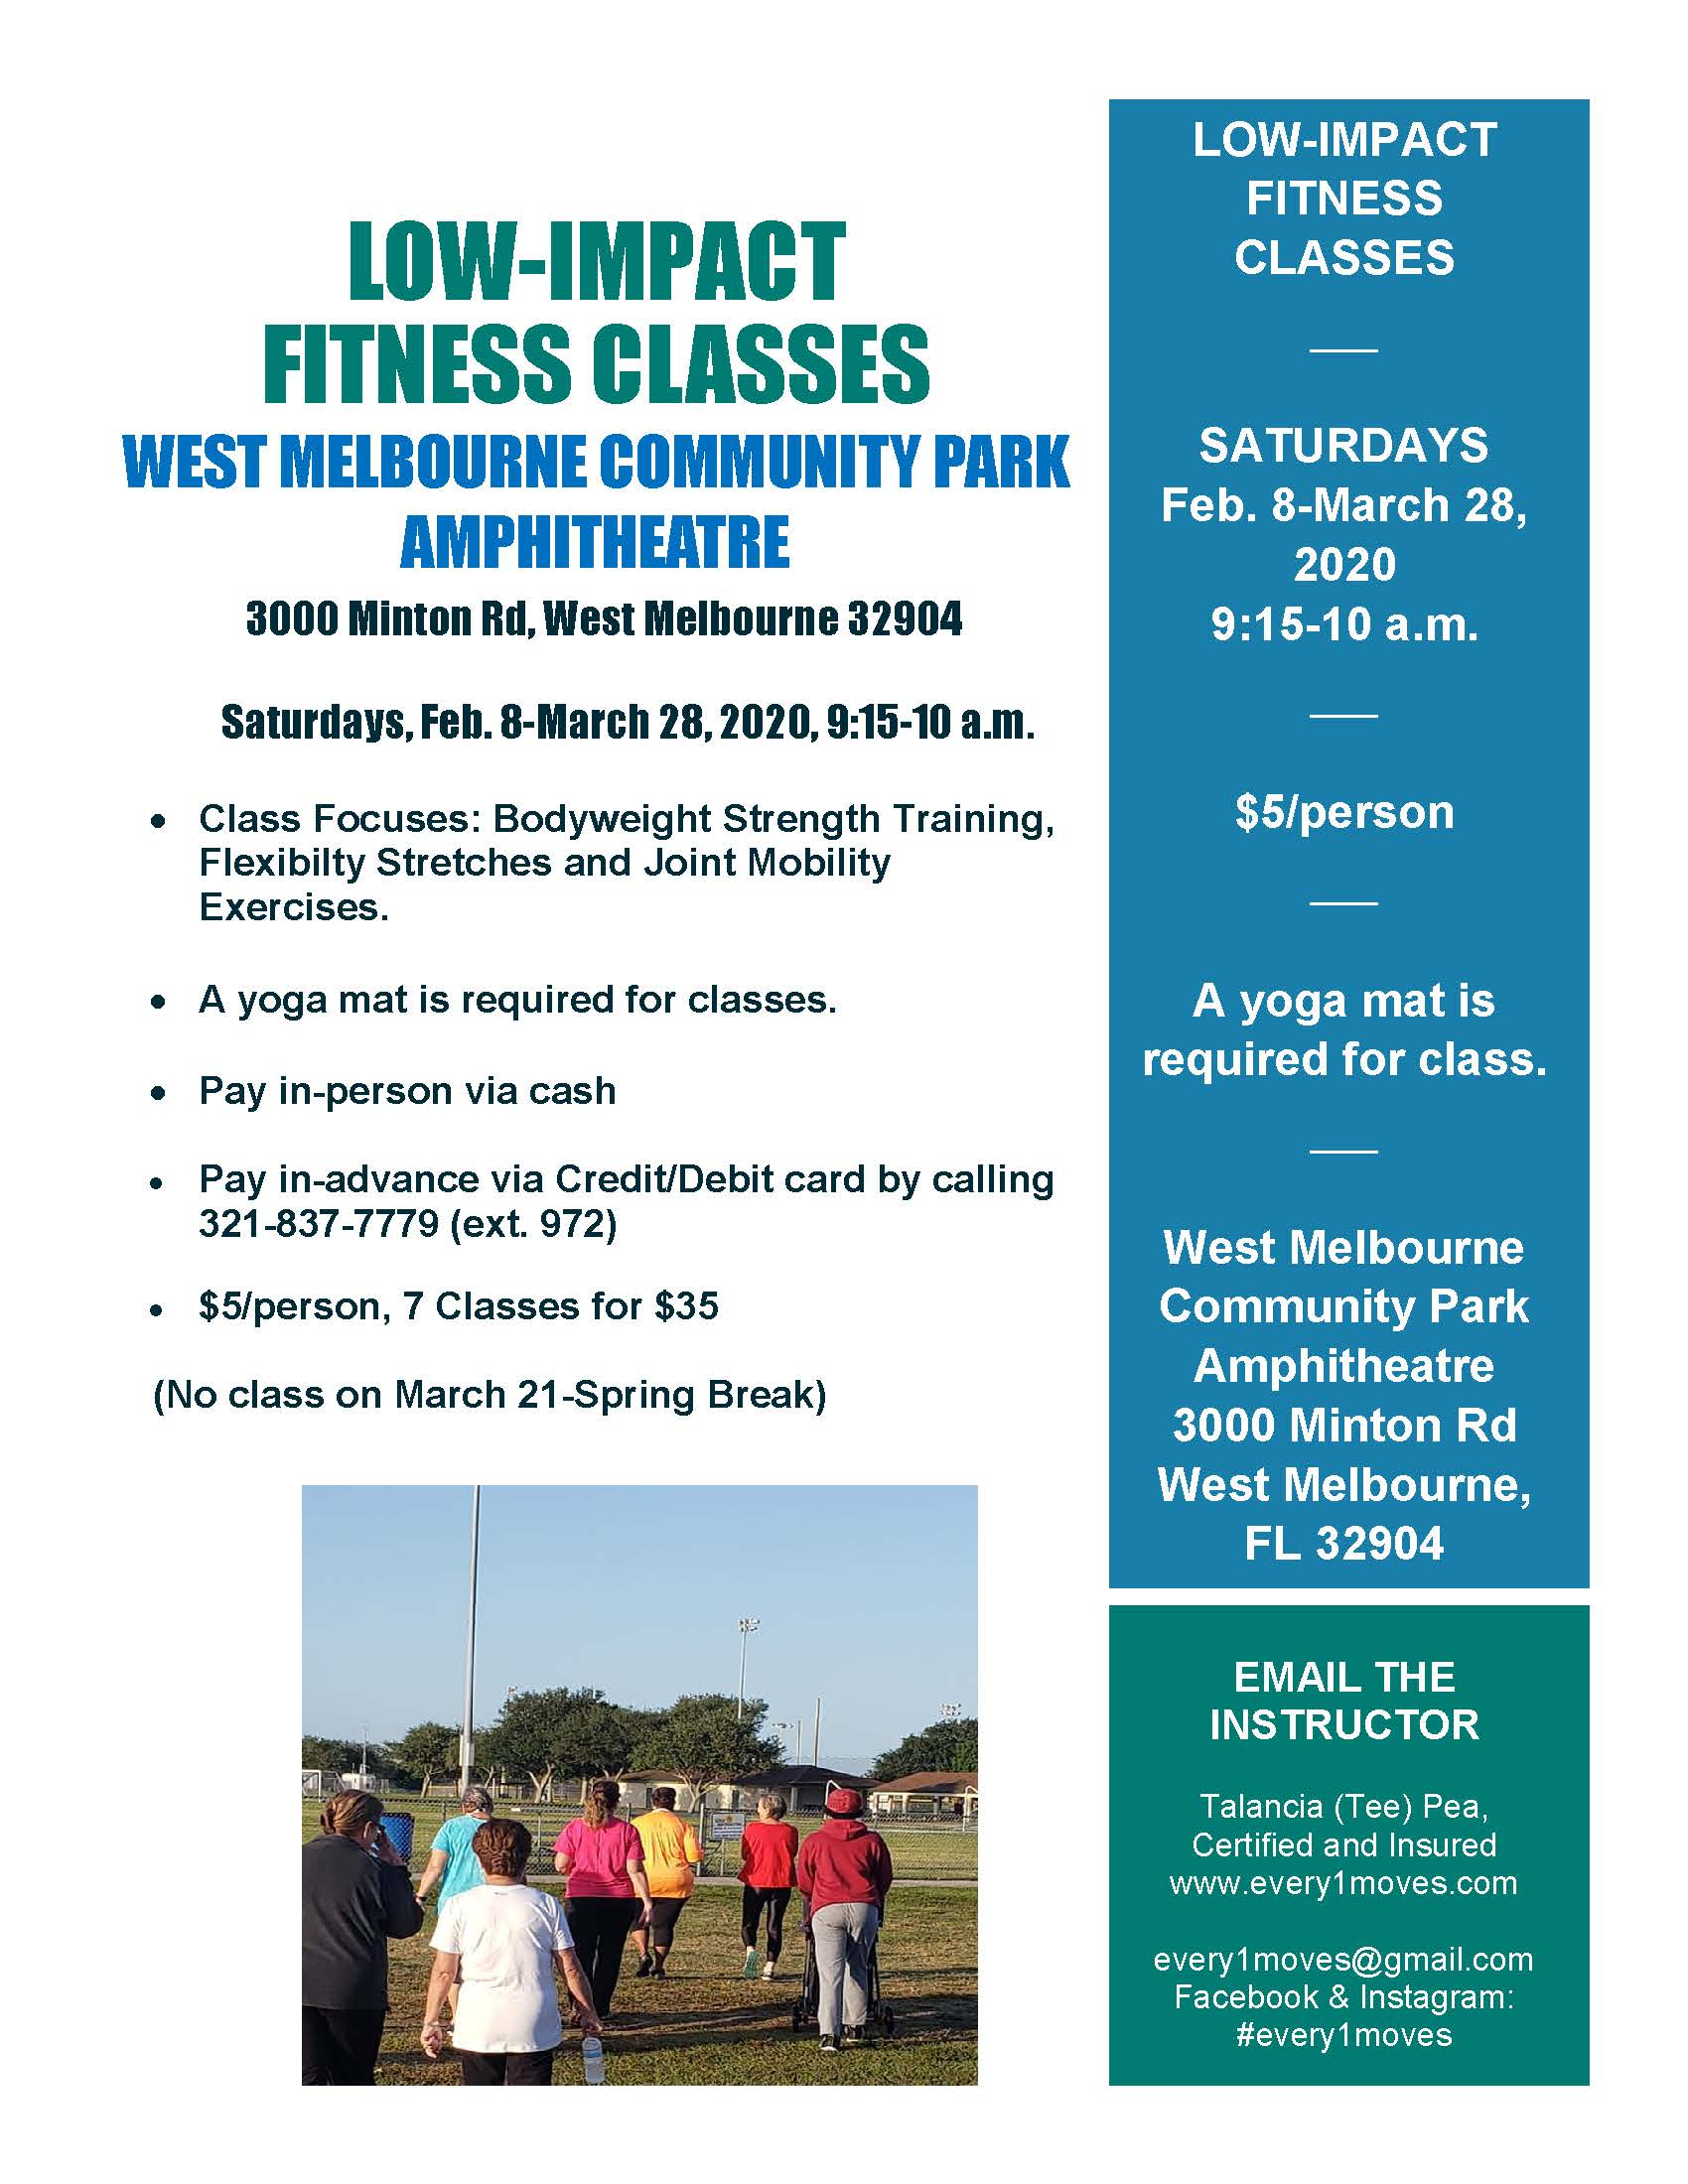 Low-Impact Fitness Class Flyer